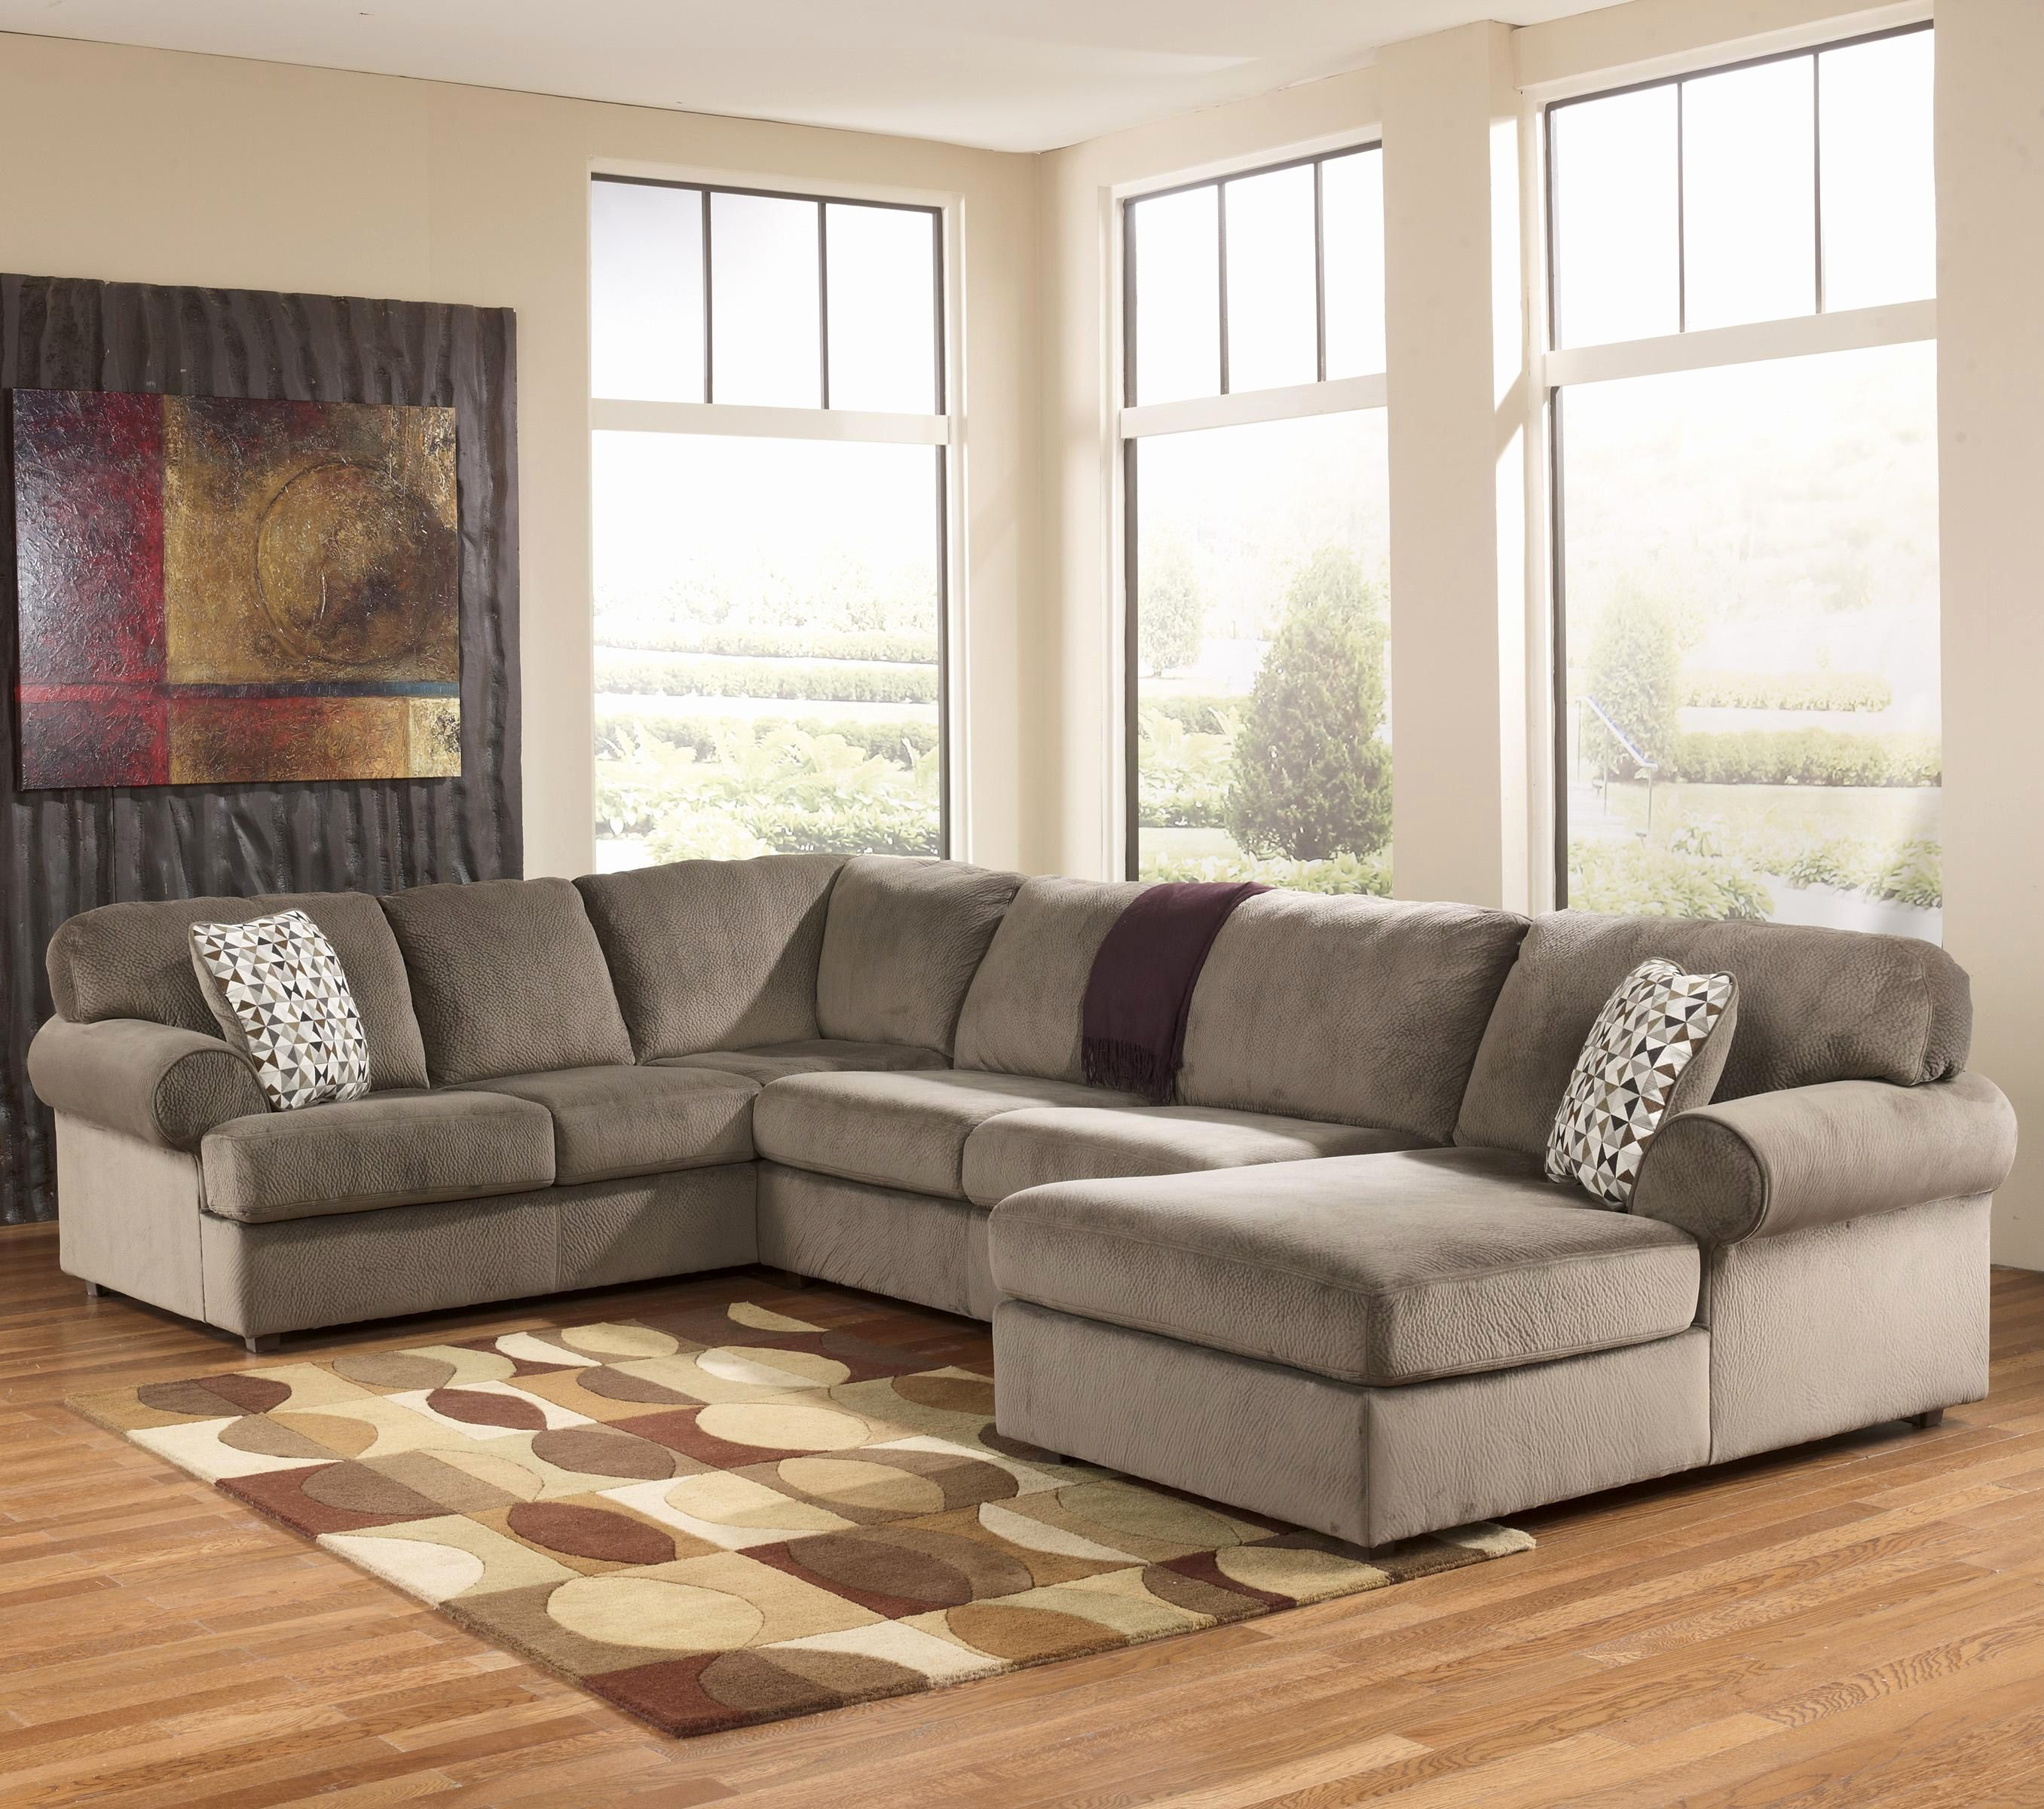 Awesome Gray Sectional Sofa Ashley Furniture Photographs Lovely Centerfieldbar